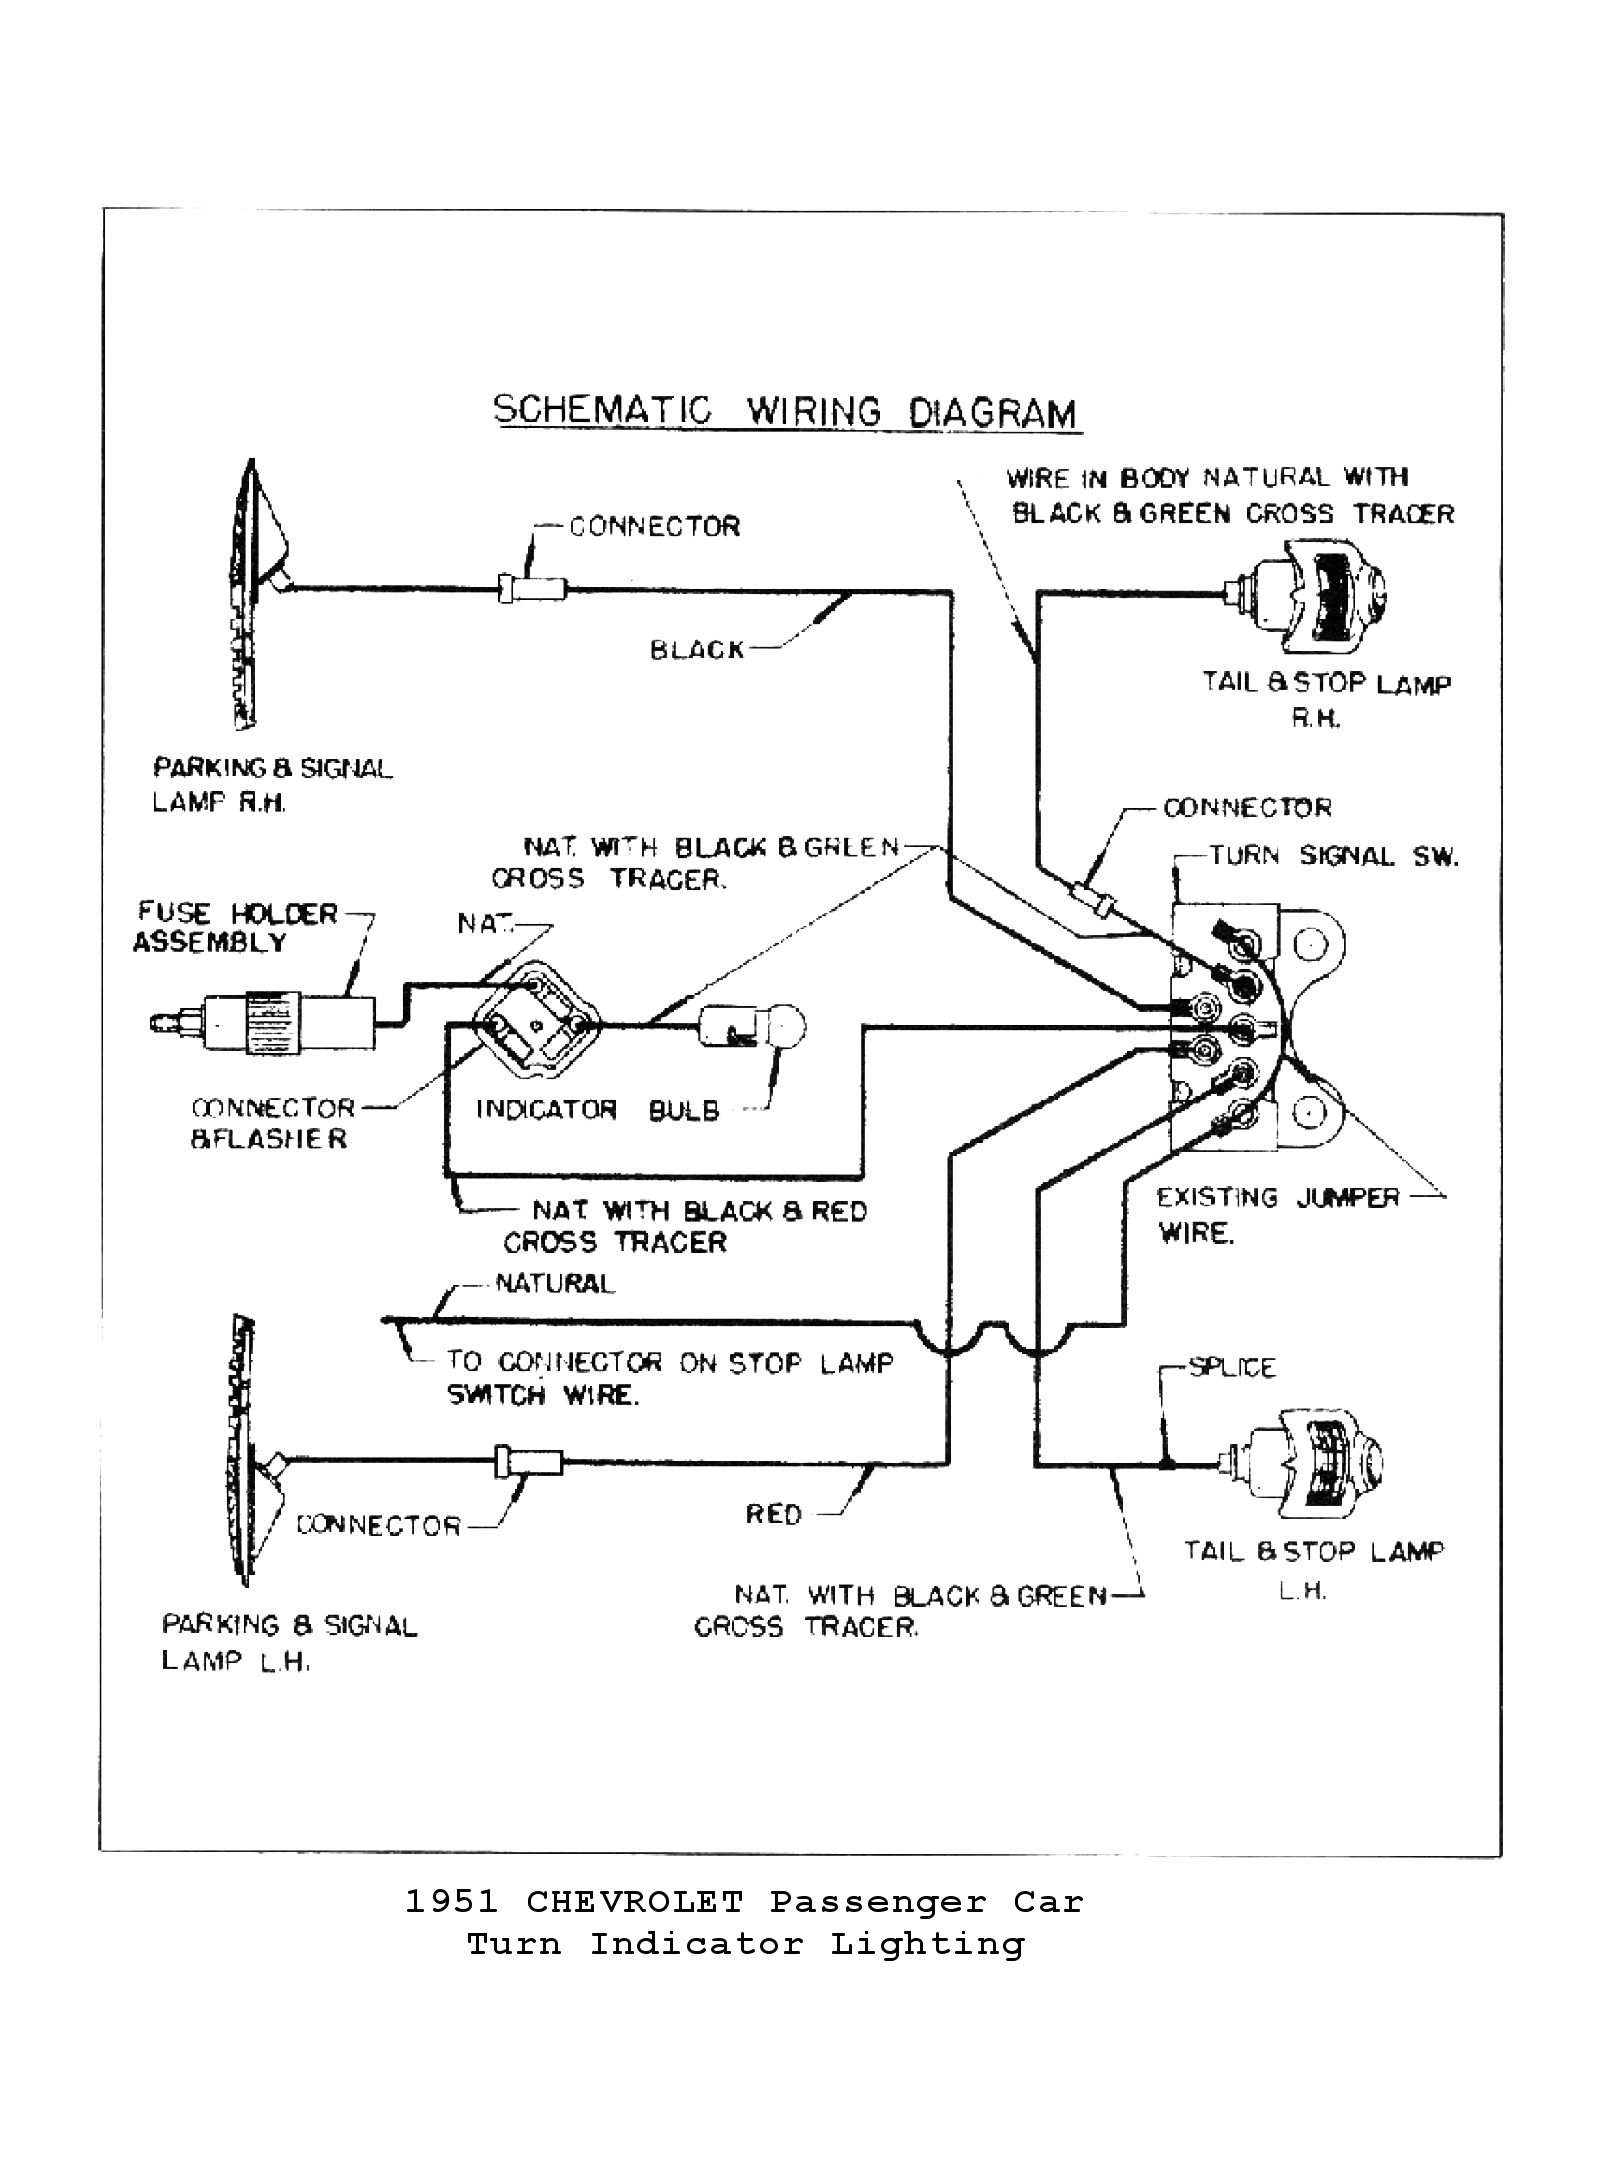 chevy wiring diagrams rh chevy oldcarmanualproject com 1955 chevy bel air ignition switch wiring diagram 1955 chevy bel air ignition switch wiring diagram